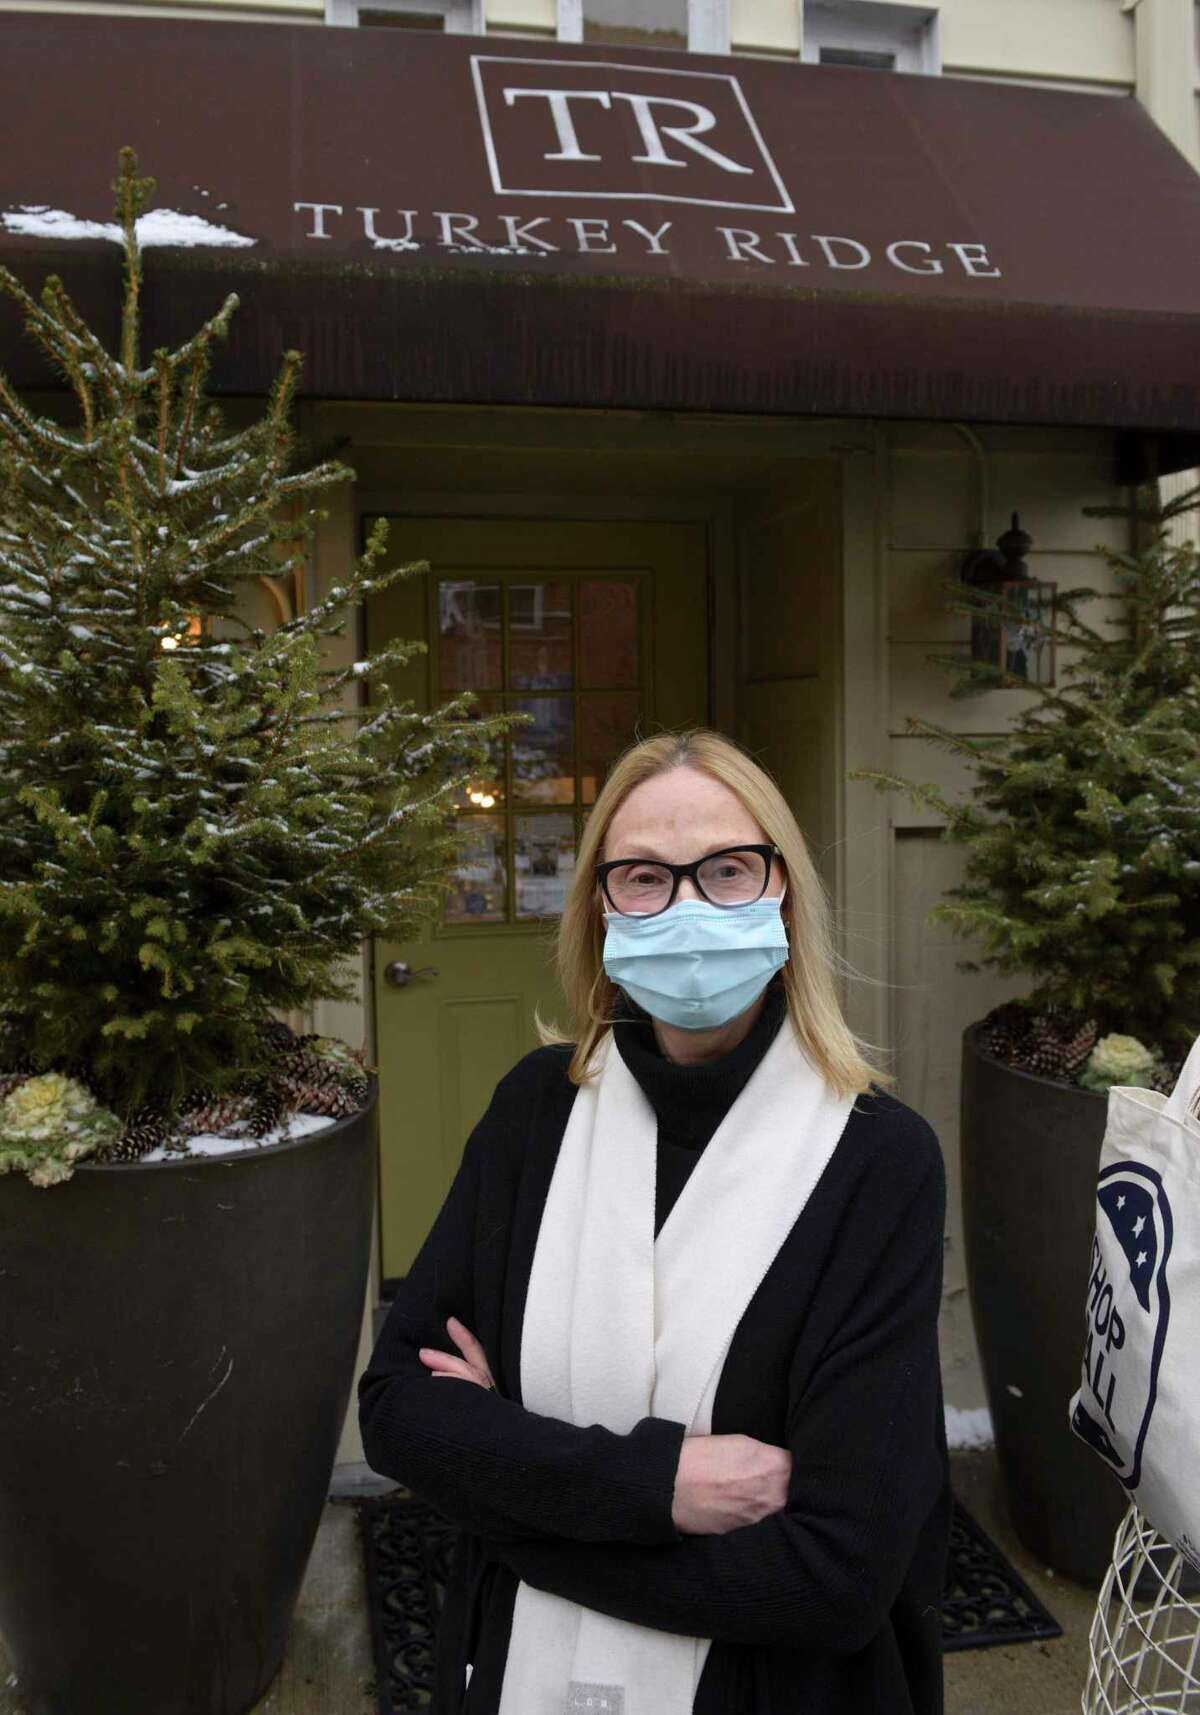 """Nadine Dolhy, owner of the Turkey Ridge gift shop, is closing her store after 22 years to enter """"semi-retirement"""". Ridgefield, Conn, Wednesday, January 27, 2021. """"It [the business] could pop up any time in all different manners or forms,"""" she said. Dolhy said she could even consider keeping the store if her landlord makes her an """"offer [she] can't refuse."""" The decision to close was """"pragmatic,"""" she said. She's """"well over"""" retirement age and knows she needs a break."""